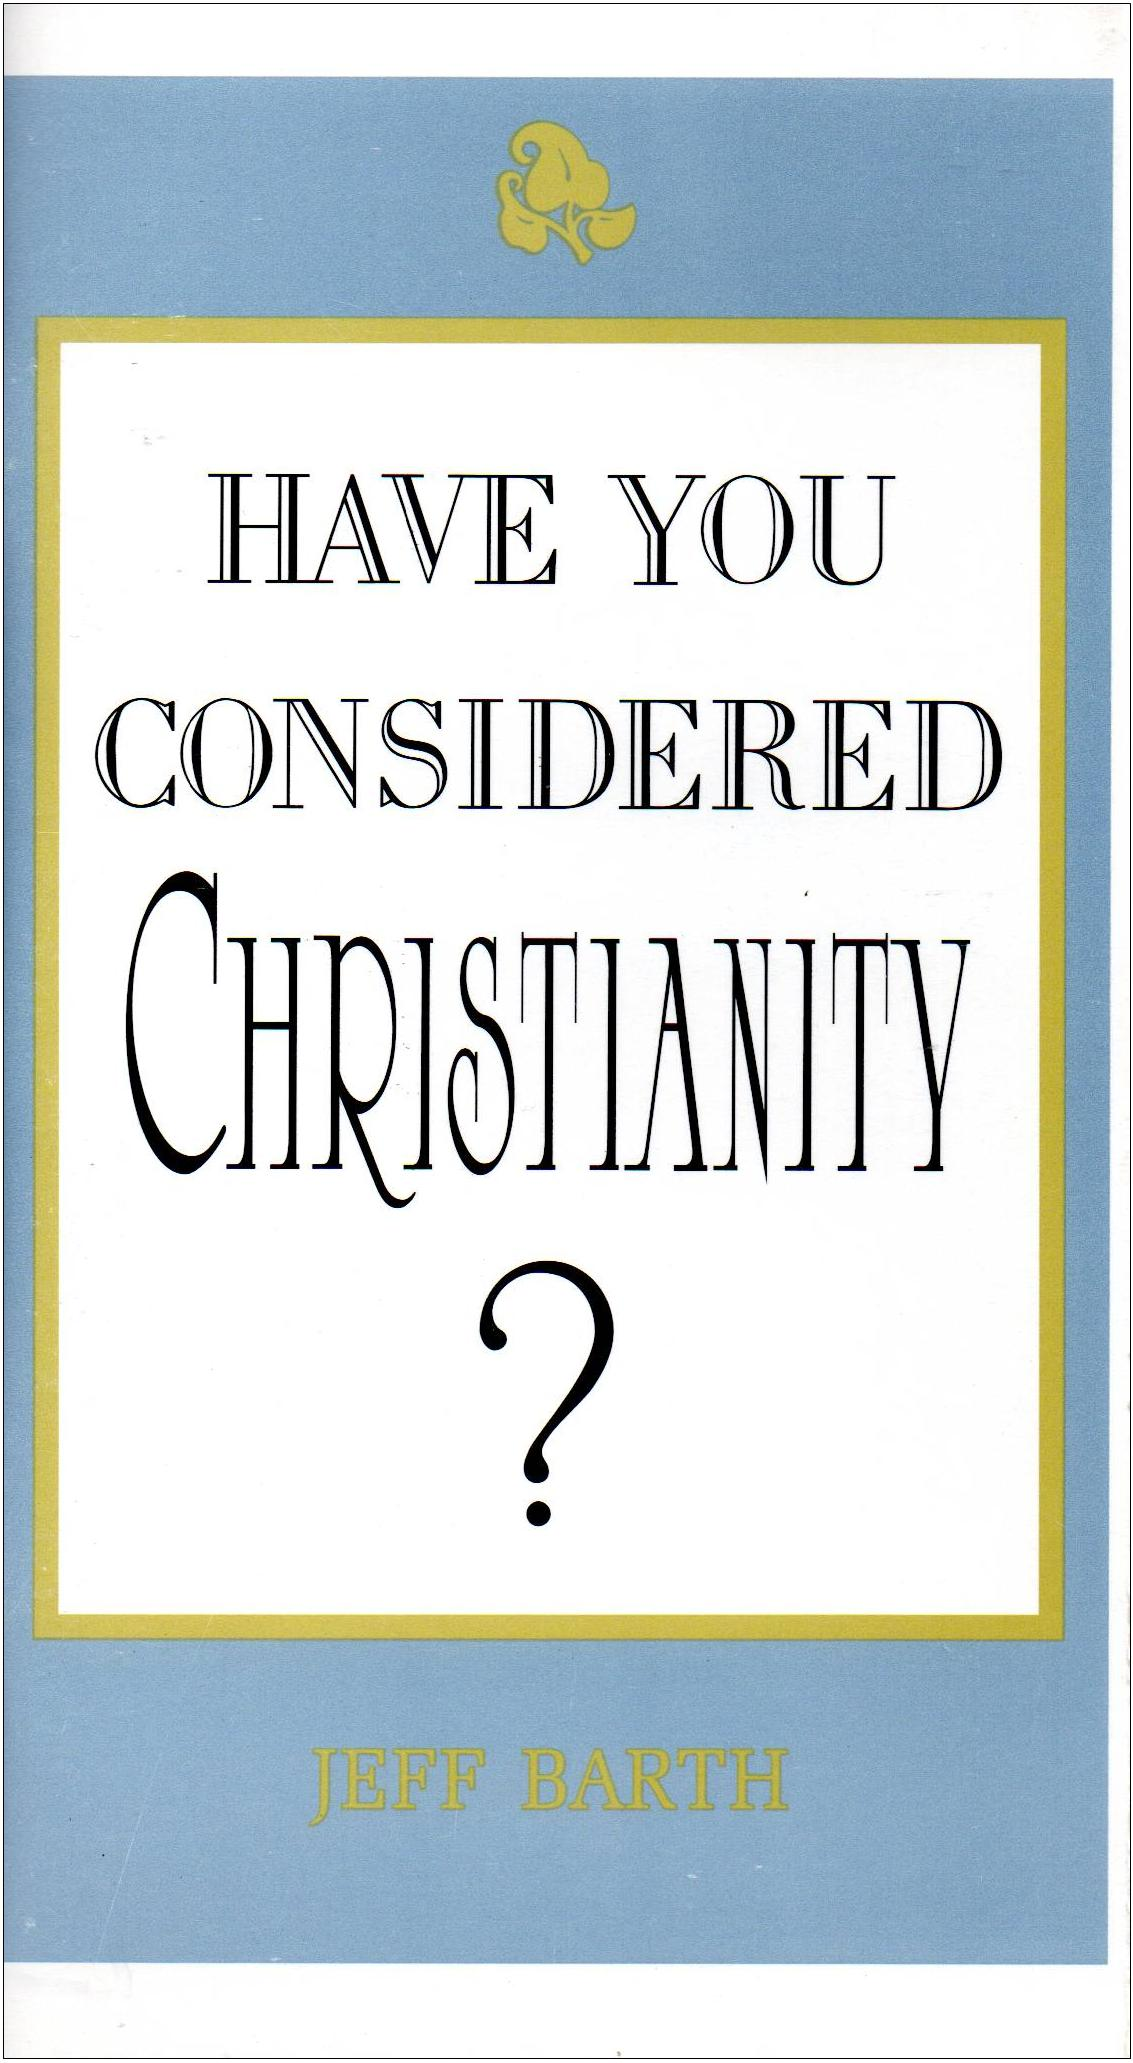 Booklet: Have You Considered Christianity?